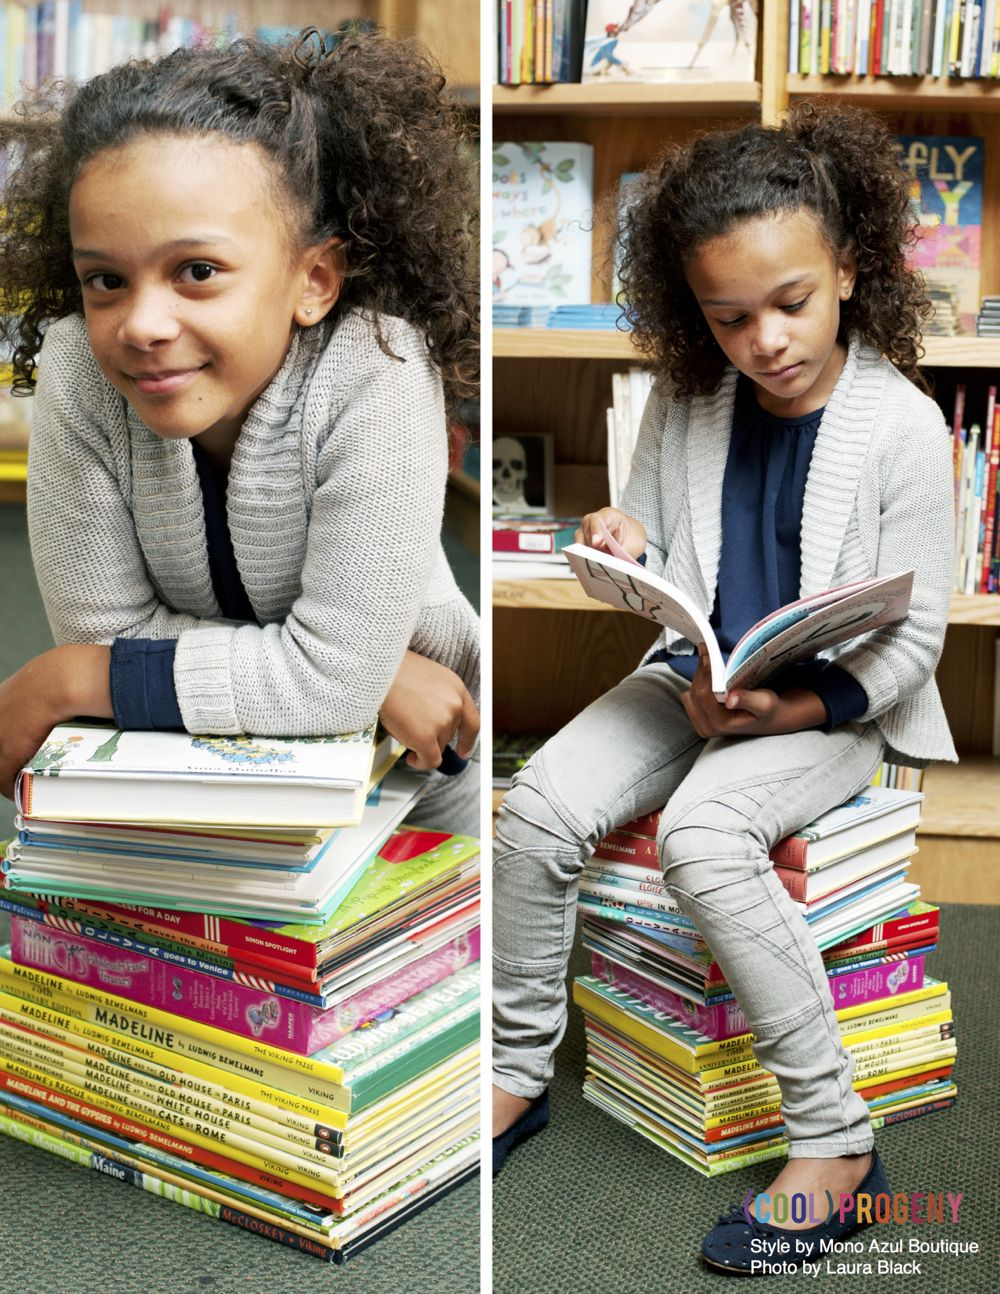 Baltimore Back to School Fashion - (cool) progeny